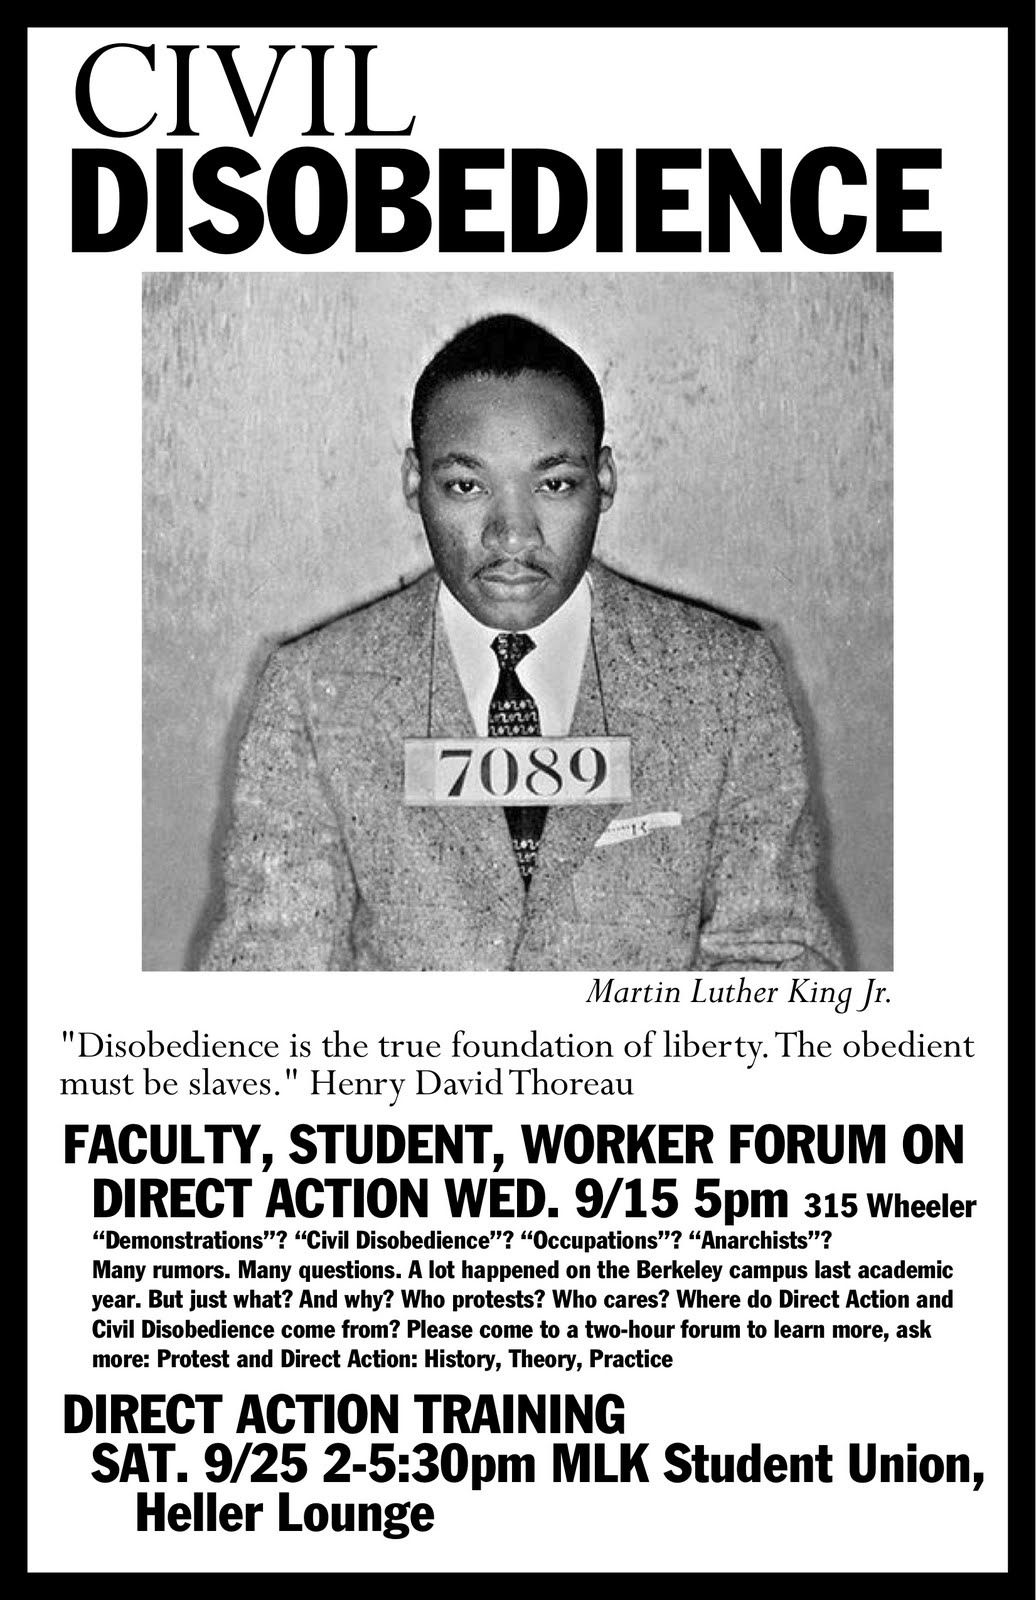 mlk essay essay essay mlk essays on martin luther king pics resume  martin luther king jr s advice to us about using violence to martin luther king s